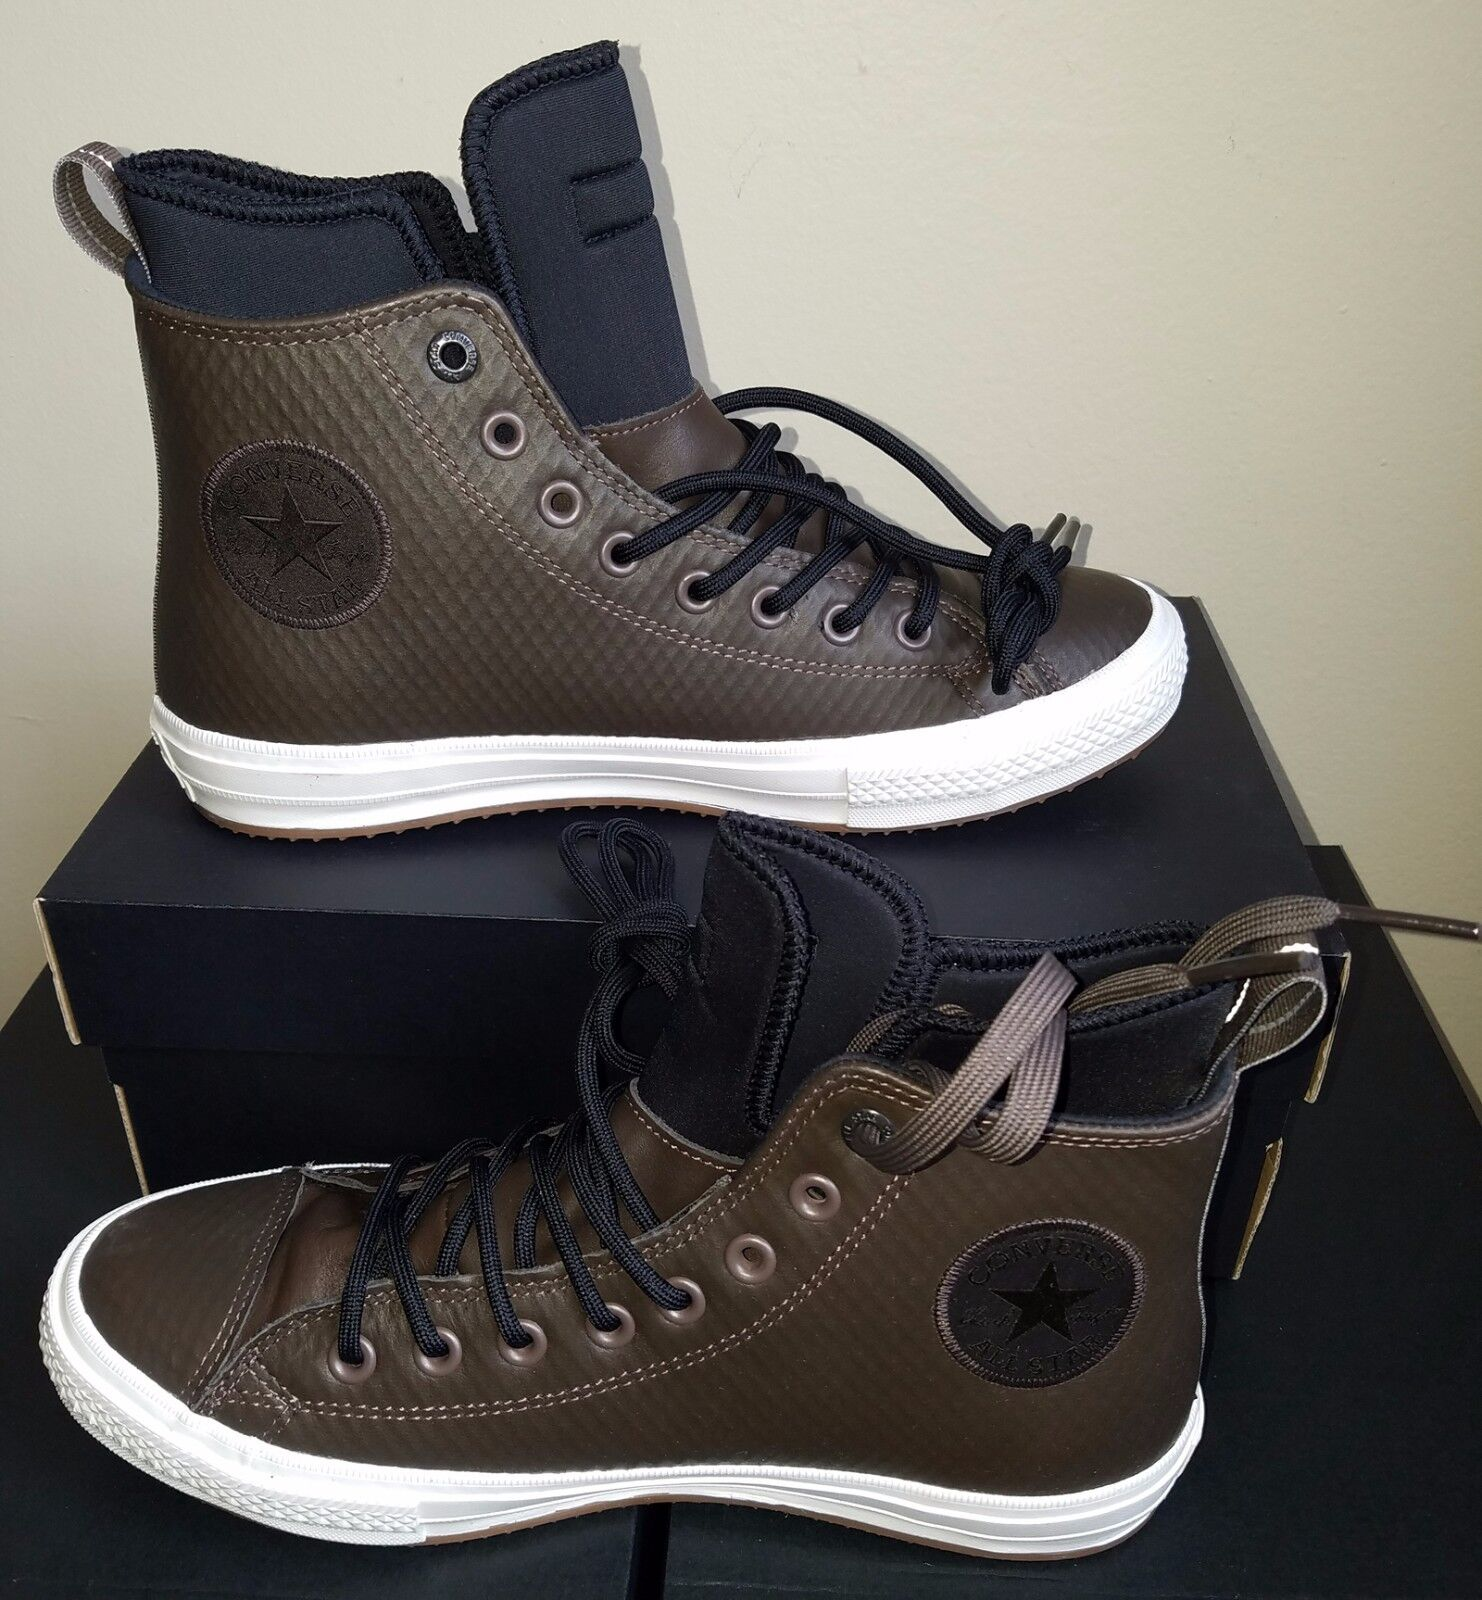 NEW CONVERSE CHUCK TAYLOR ALL STAR II WATERPROOF MESH BACKED LEATHER US 6.5